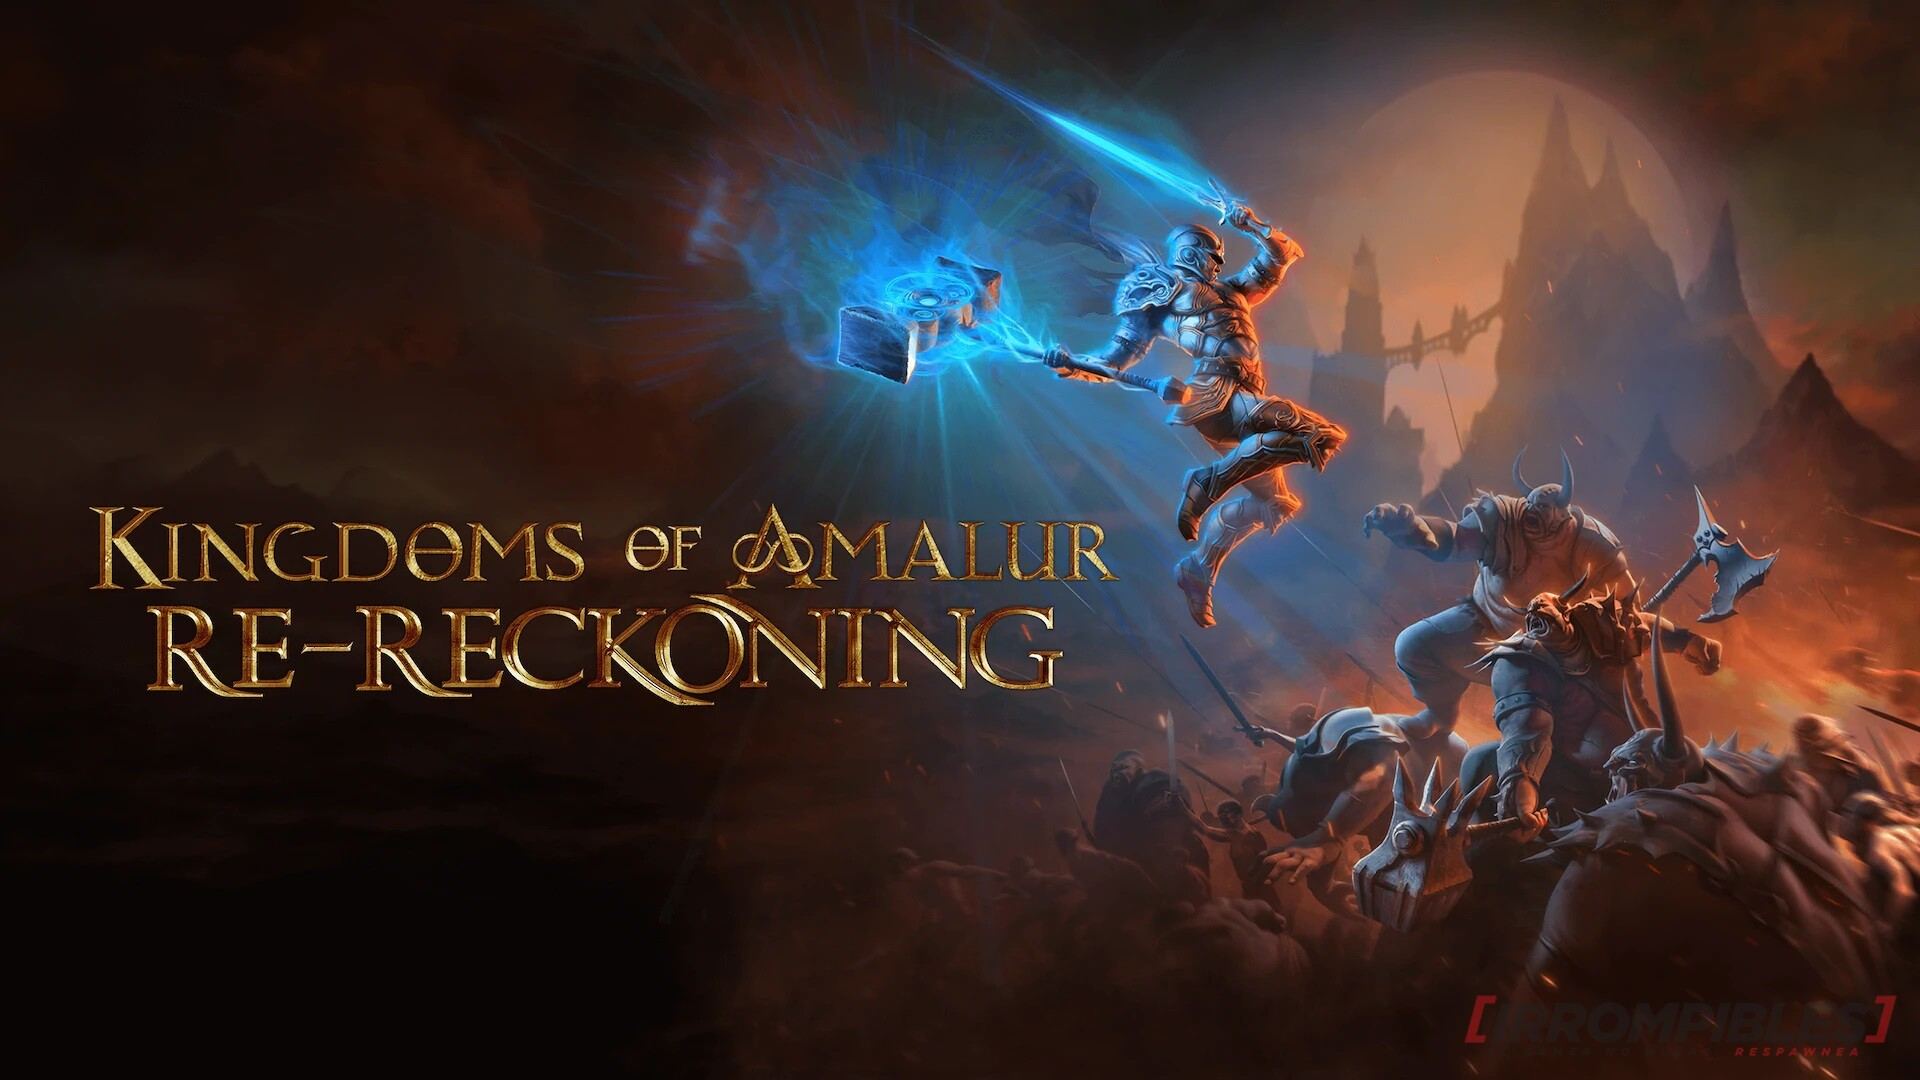 Kingdoms of Amalur Re Reckoning